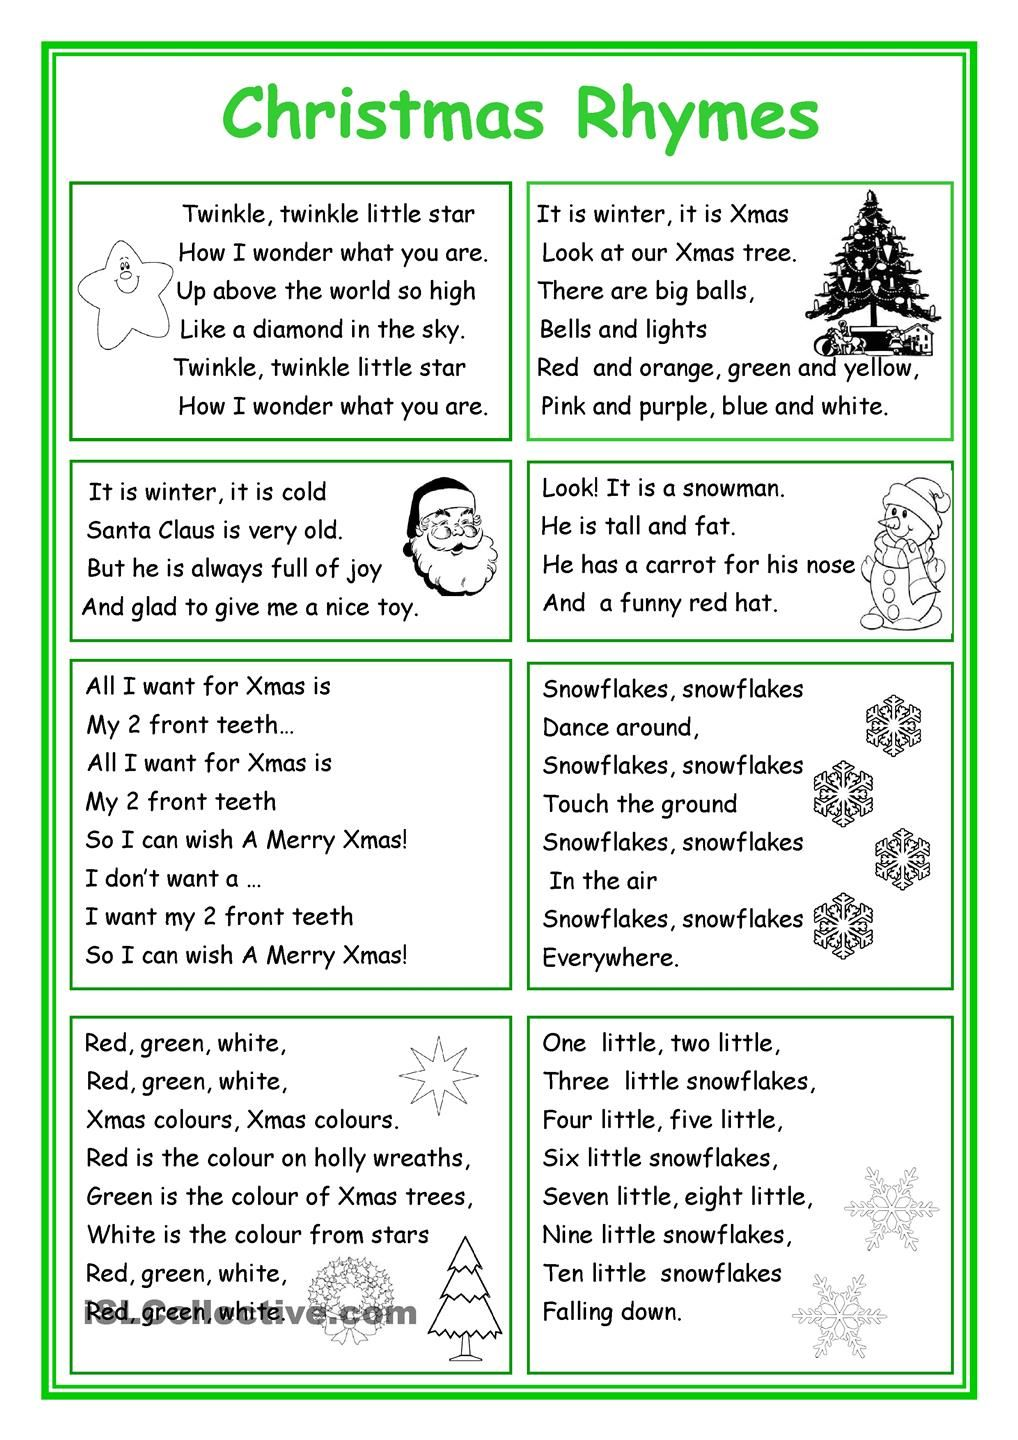 Christmas Rhymes | Christmas Lessons | Pinterest | Christmas ...